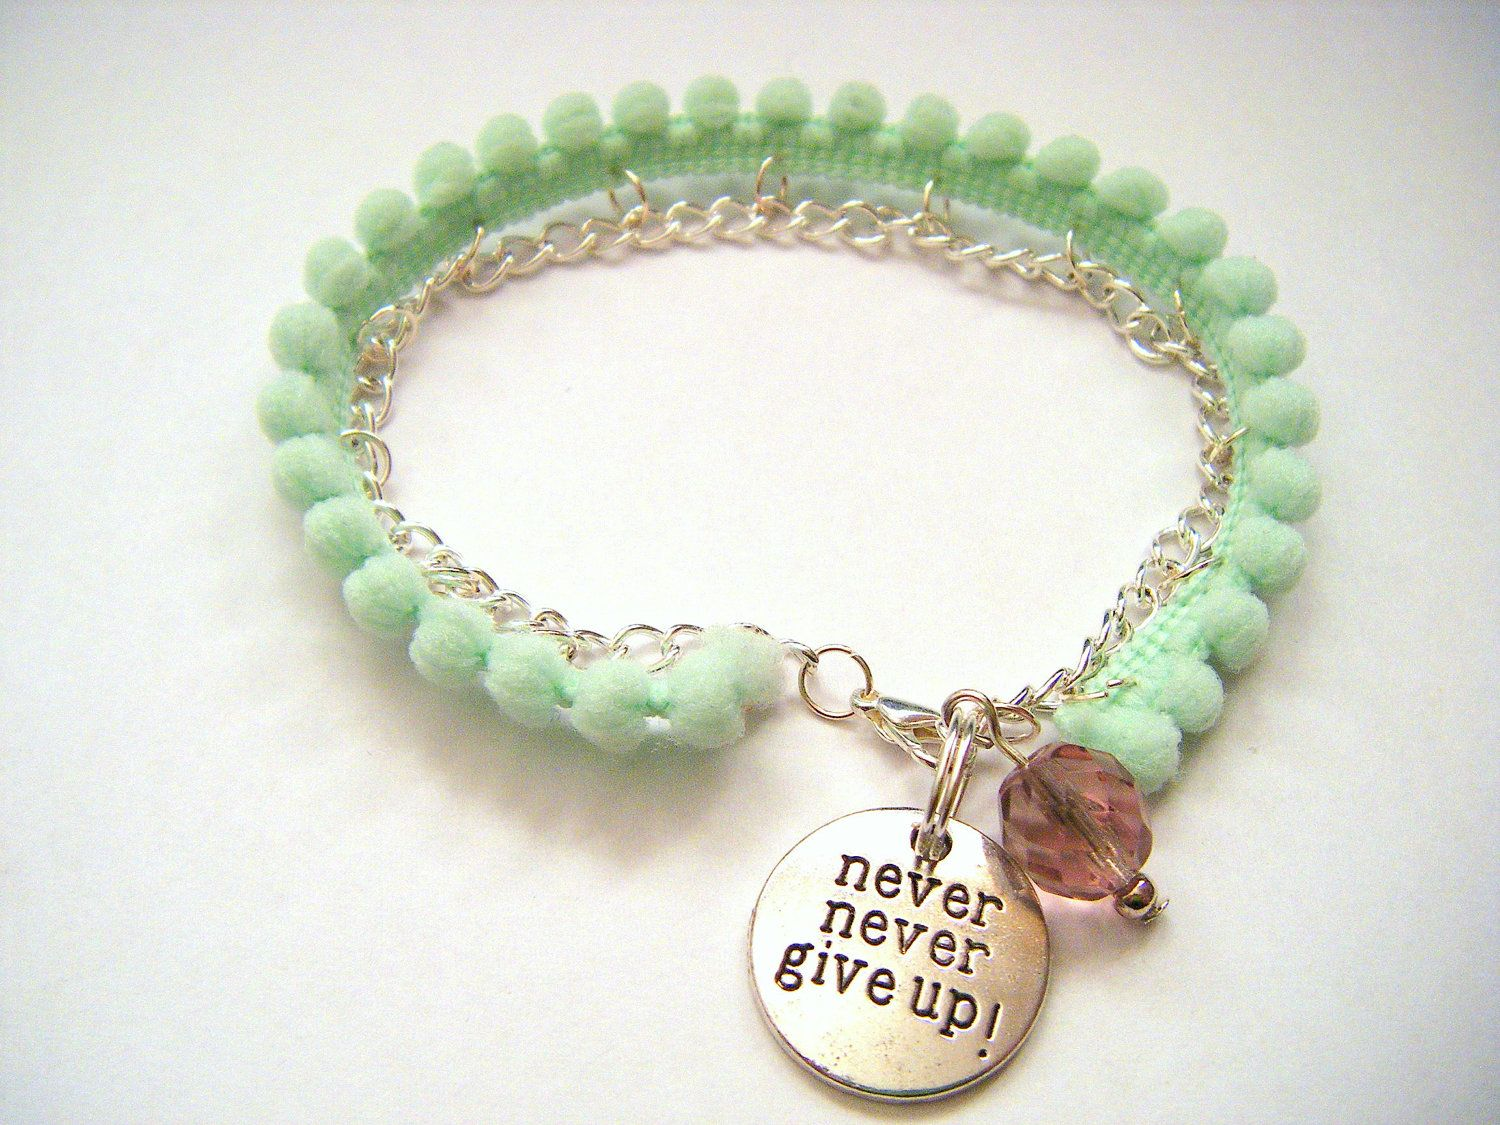 mental wellbeing pom up give positivity pin raising bracelet green health awareness mint never